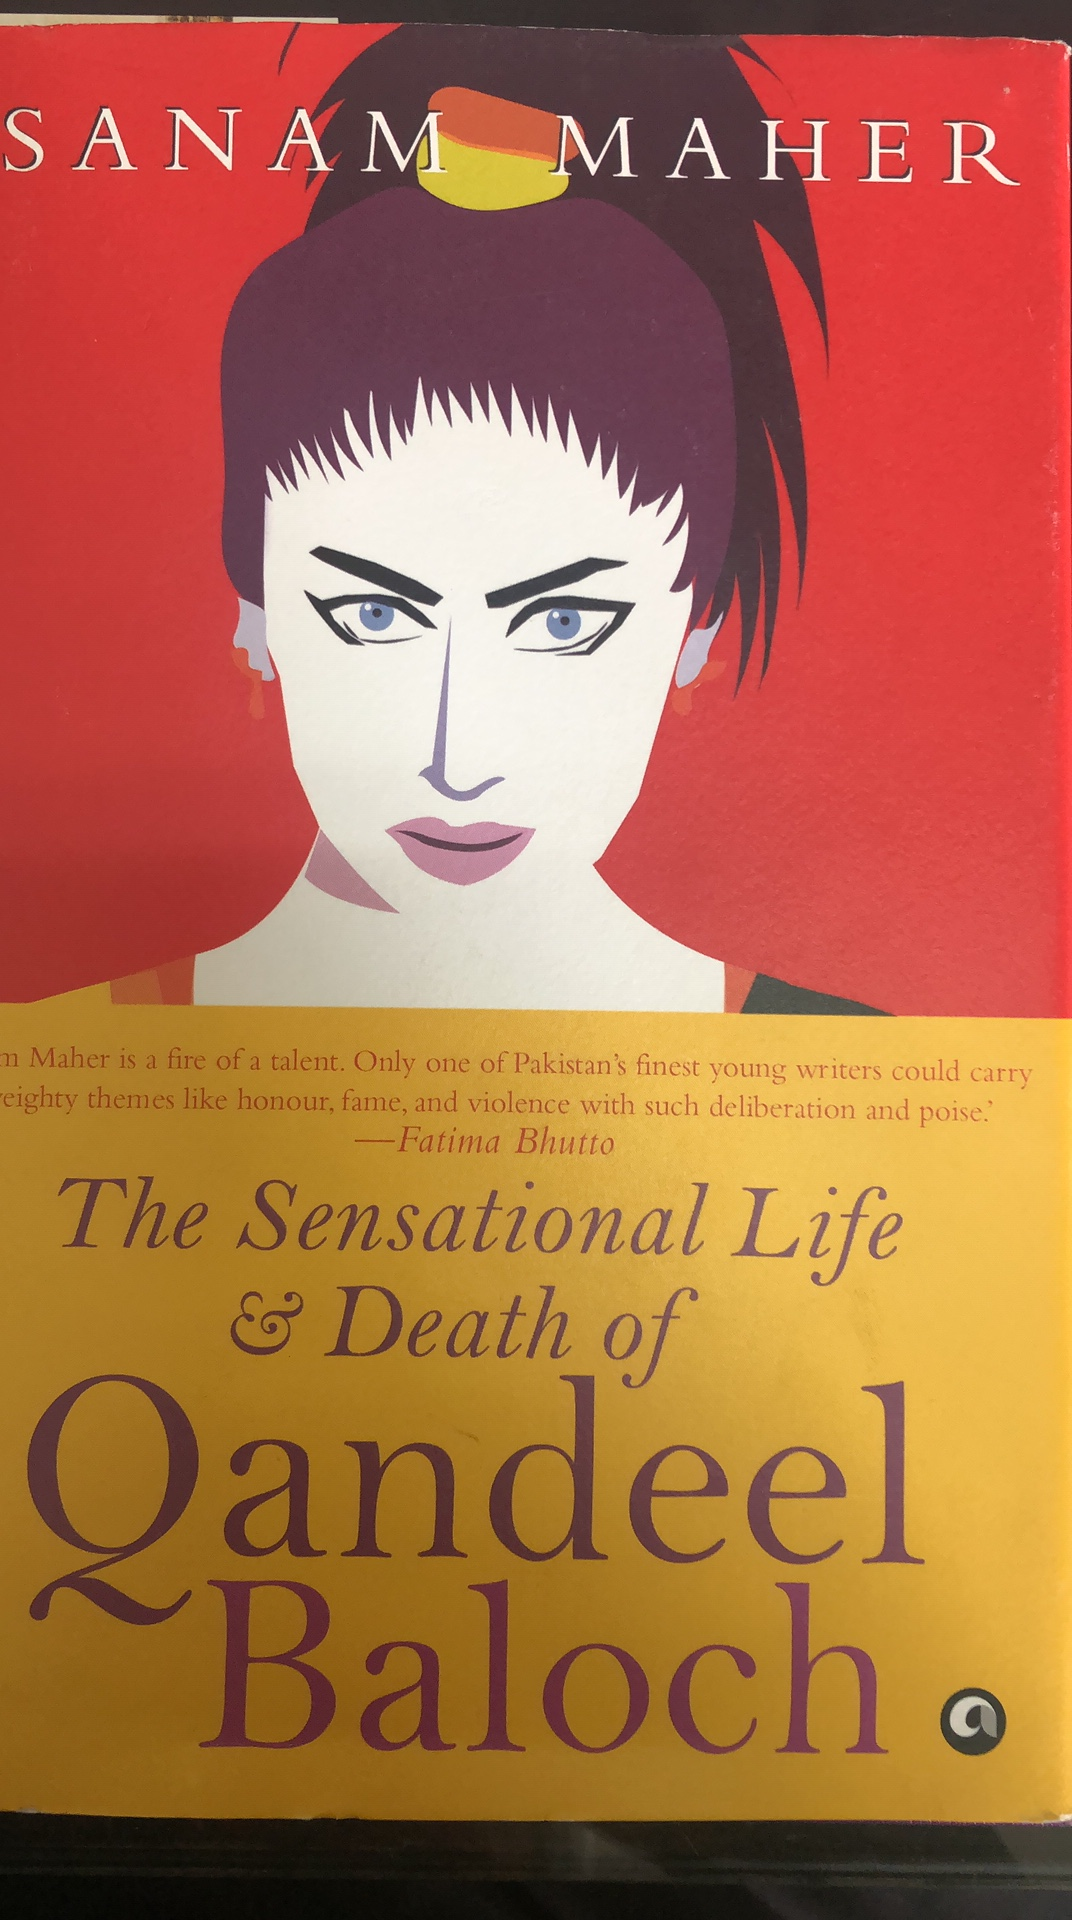 Book on the life of Qandeel Baloch is now available in